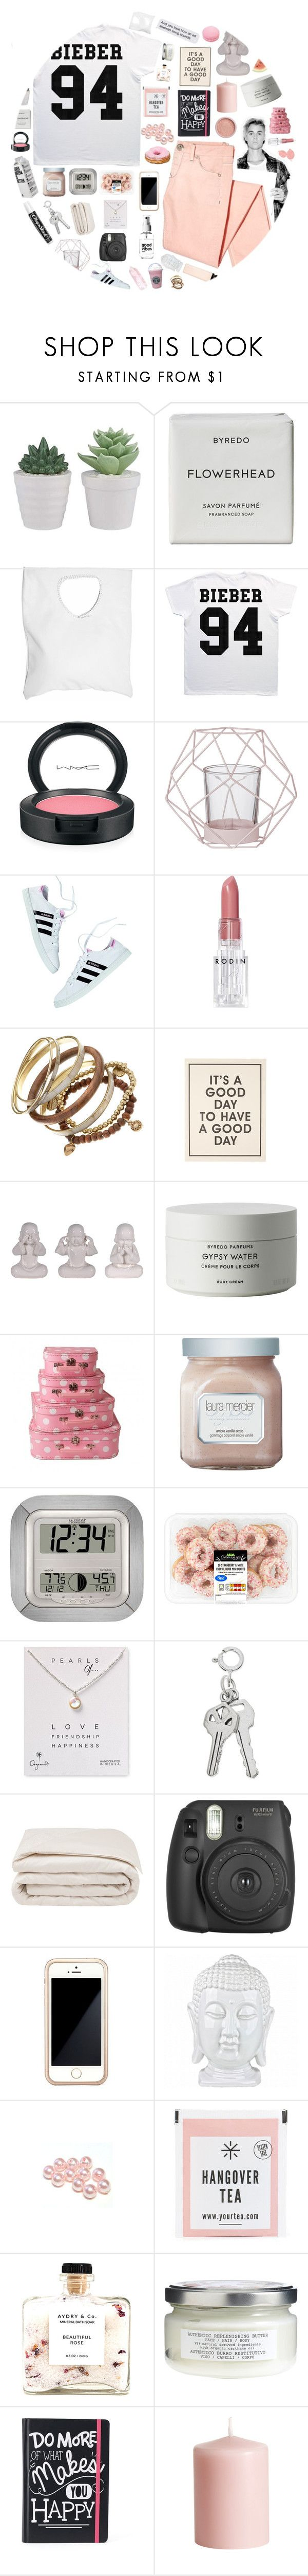 """""""pretty french words."""" by a-million-dreams ❤ liked on Polyvore featuring Byredo, Jennifer Haley, Pyrex, MAC Cosmetics, Chapstick, Bloomingville, Rodin, Justin Bieber, Miss Selfridge and Laura Mercier"""